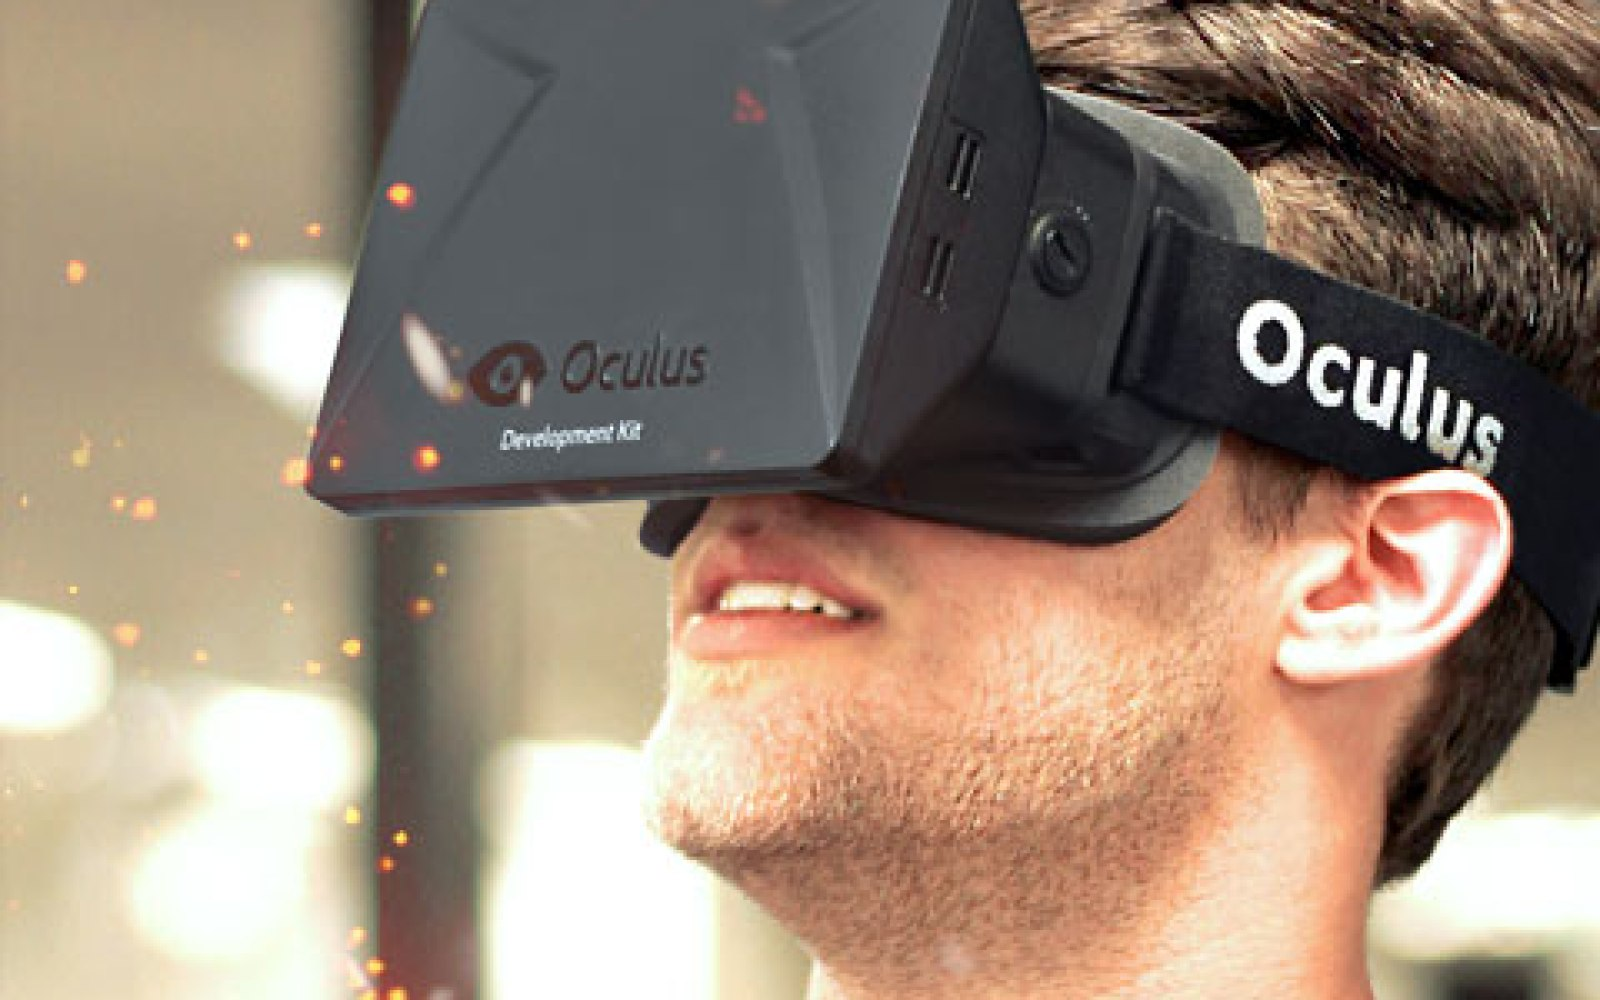 Apple is working on VR gaming & user interfaces for future products, Oculus and Leap experts wanted